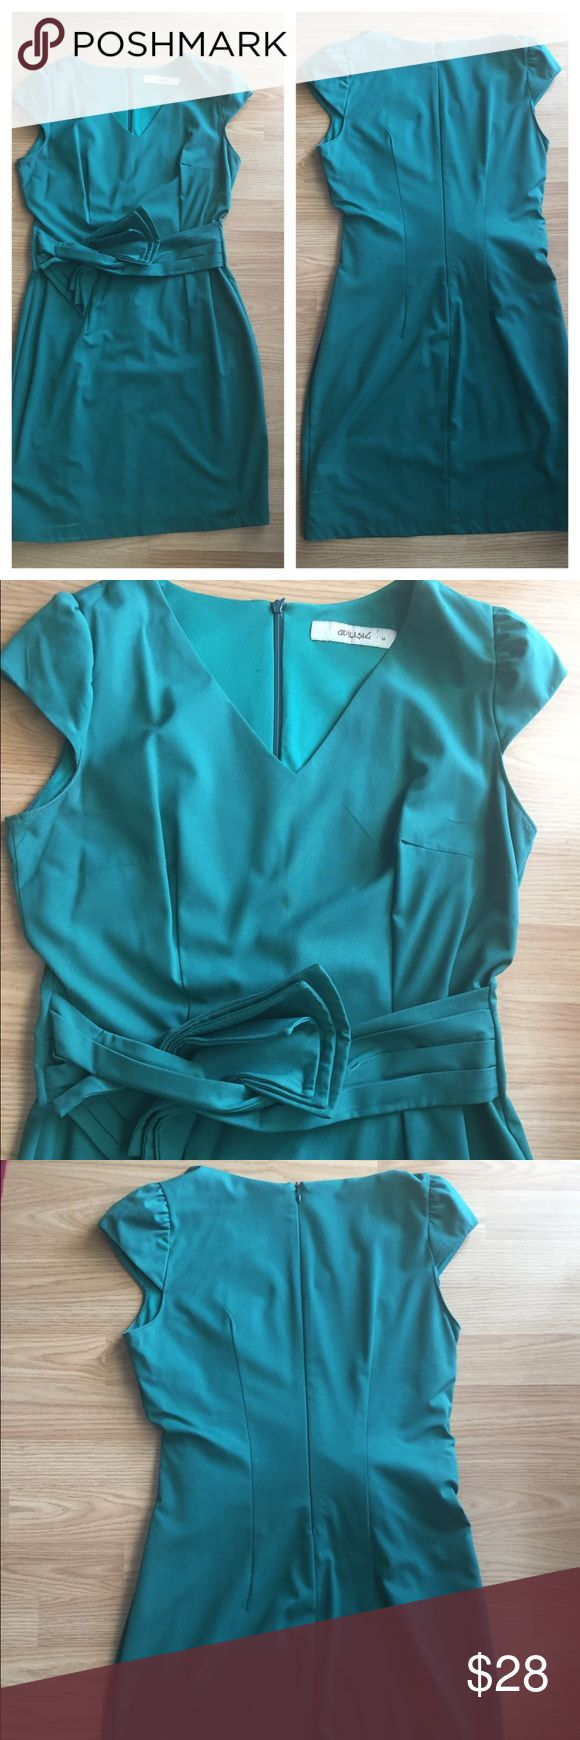 Gorgeous green mini dress Super beautiful green mini dress. V neck, short sleeve. Worn twice. Dresses Mini